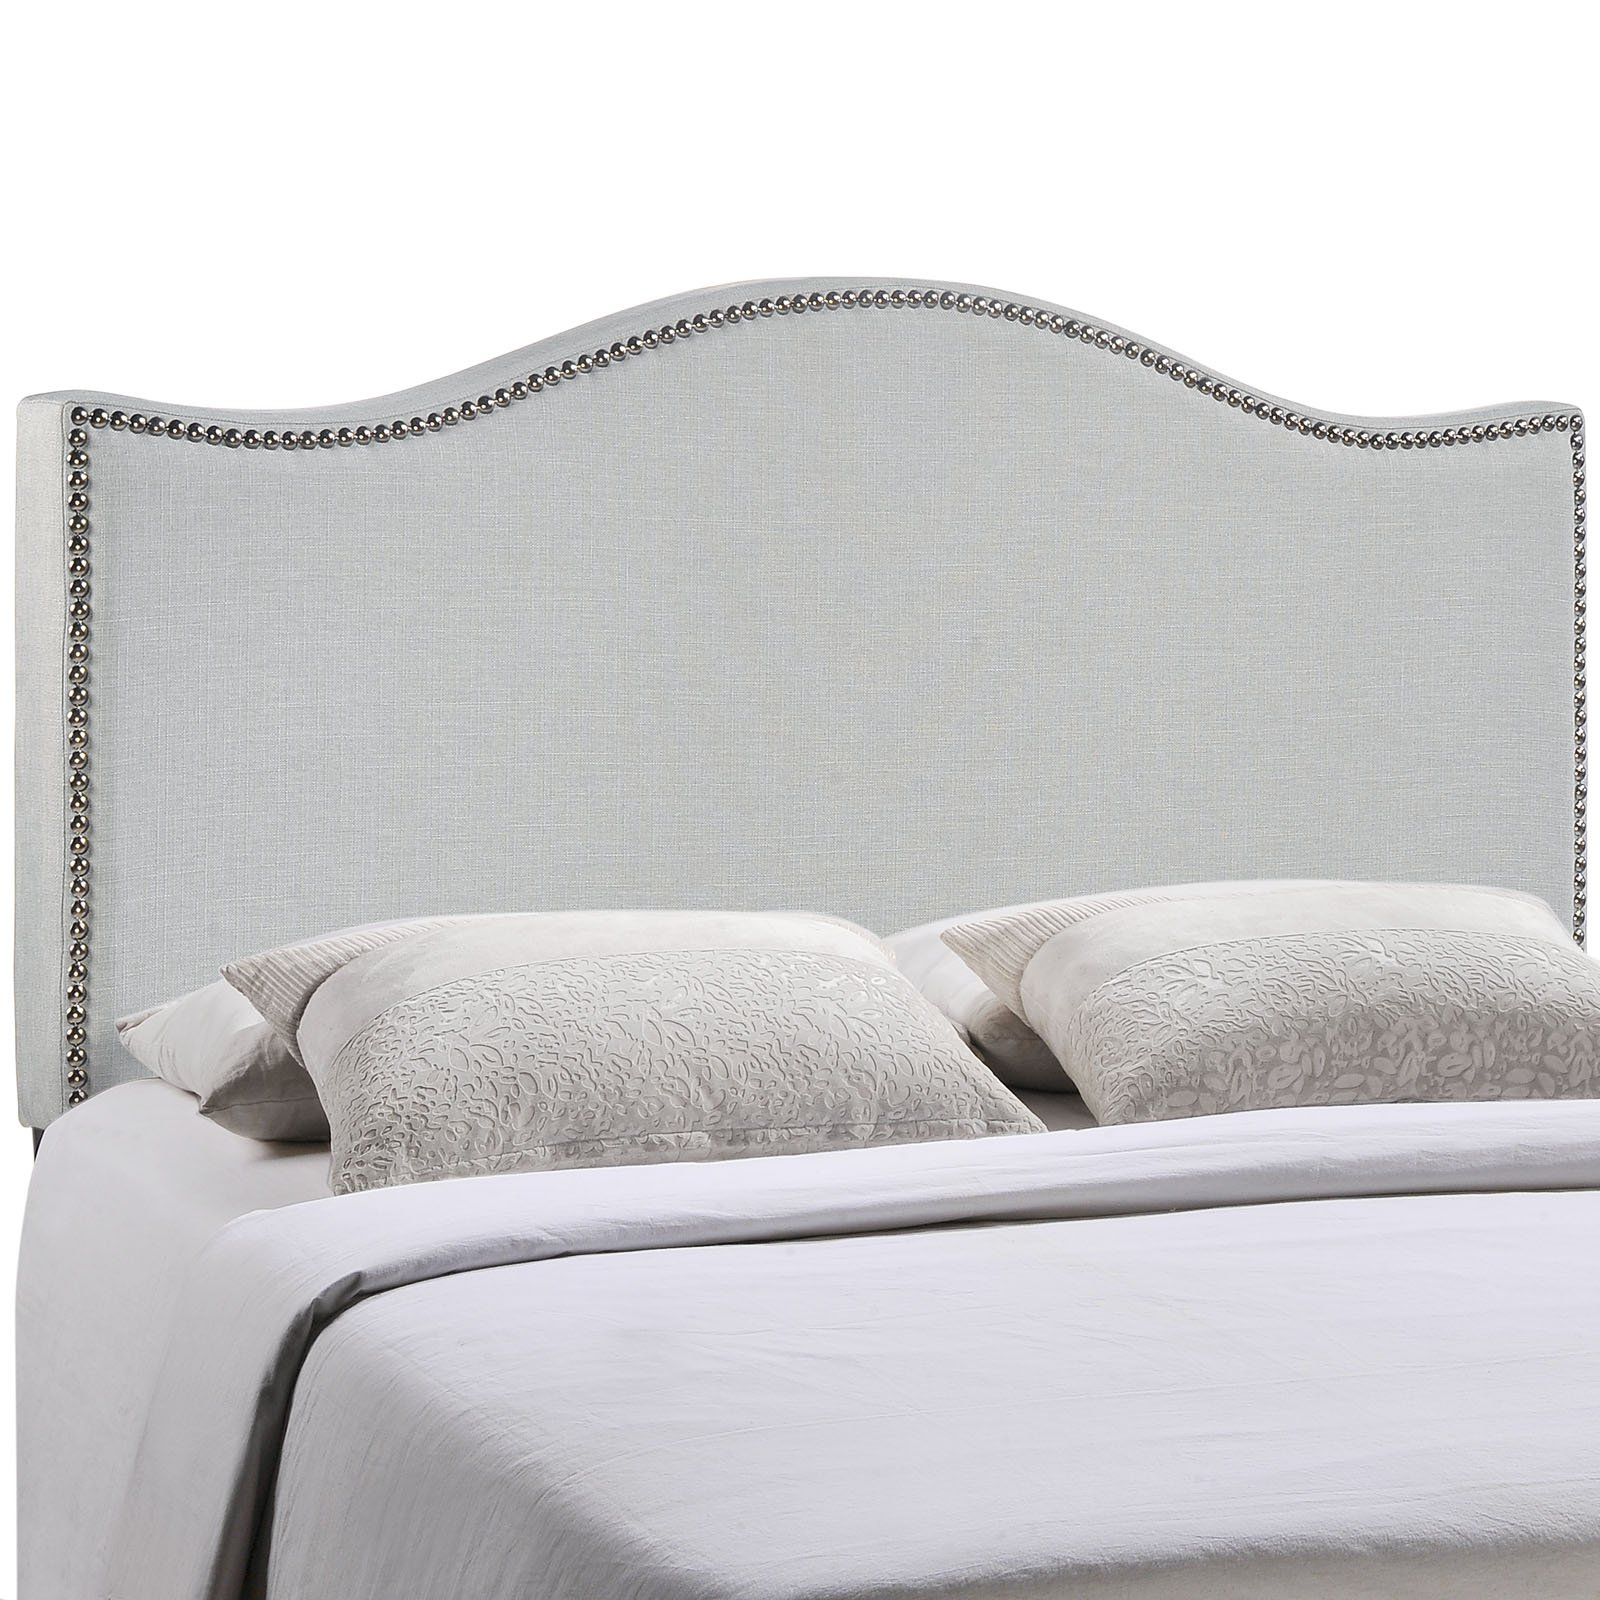 Modway Curl Upholstered Linen Fabric Full Headboard Size With Nailhead Trim and Curved Shape in Sky Gray Fabric